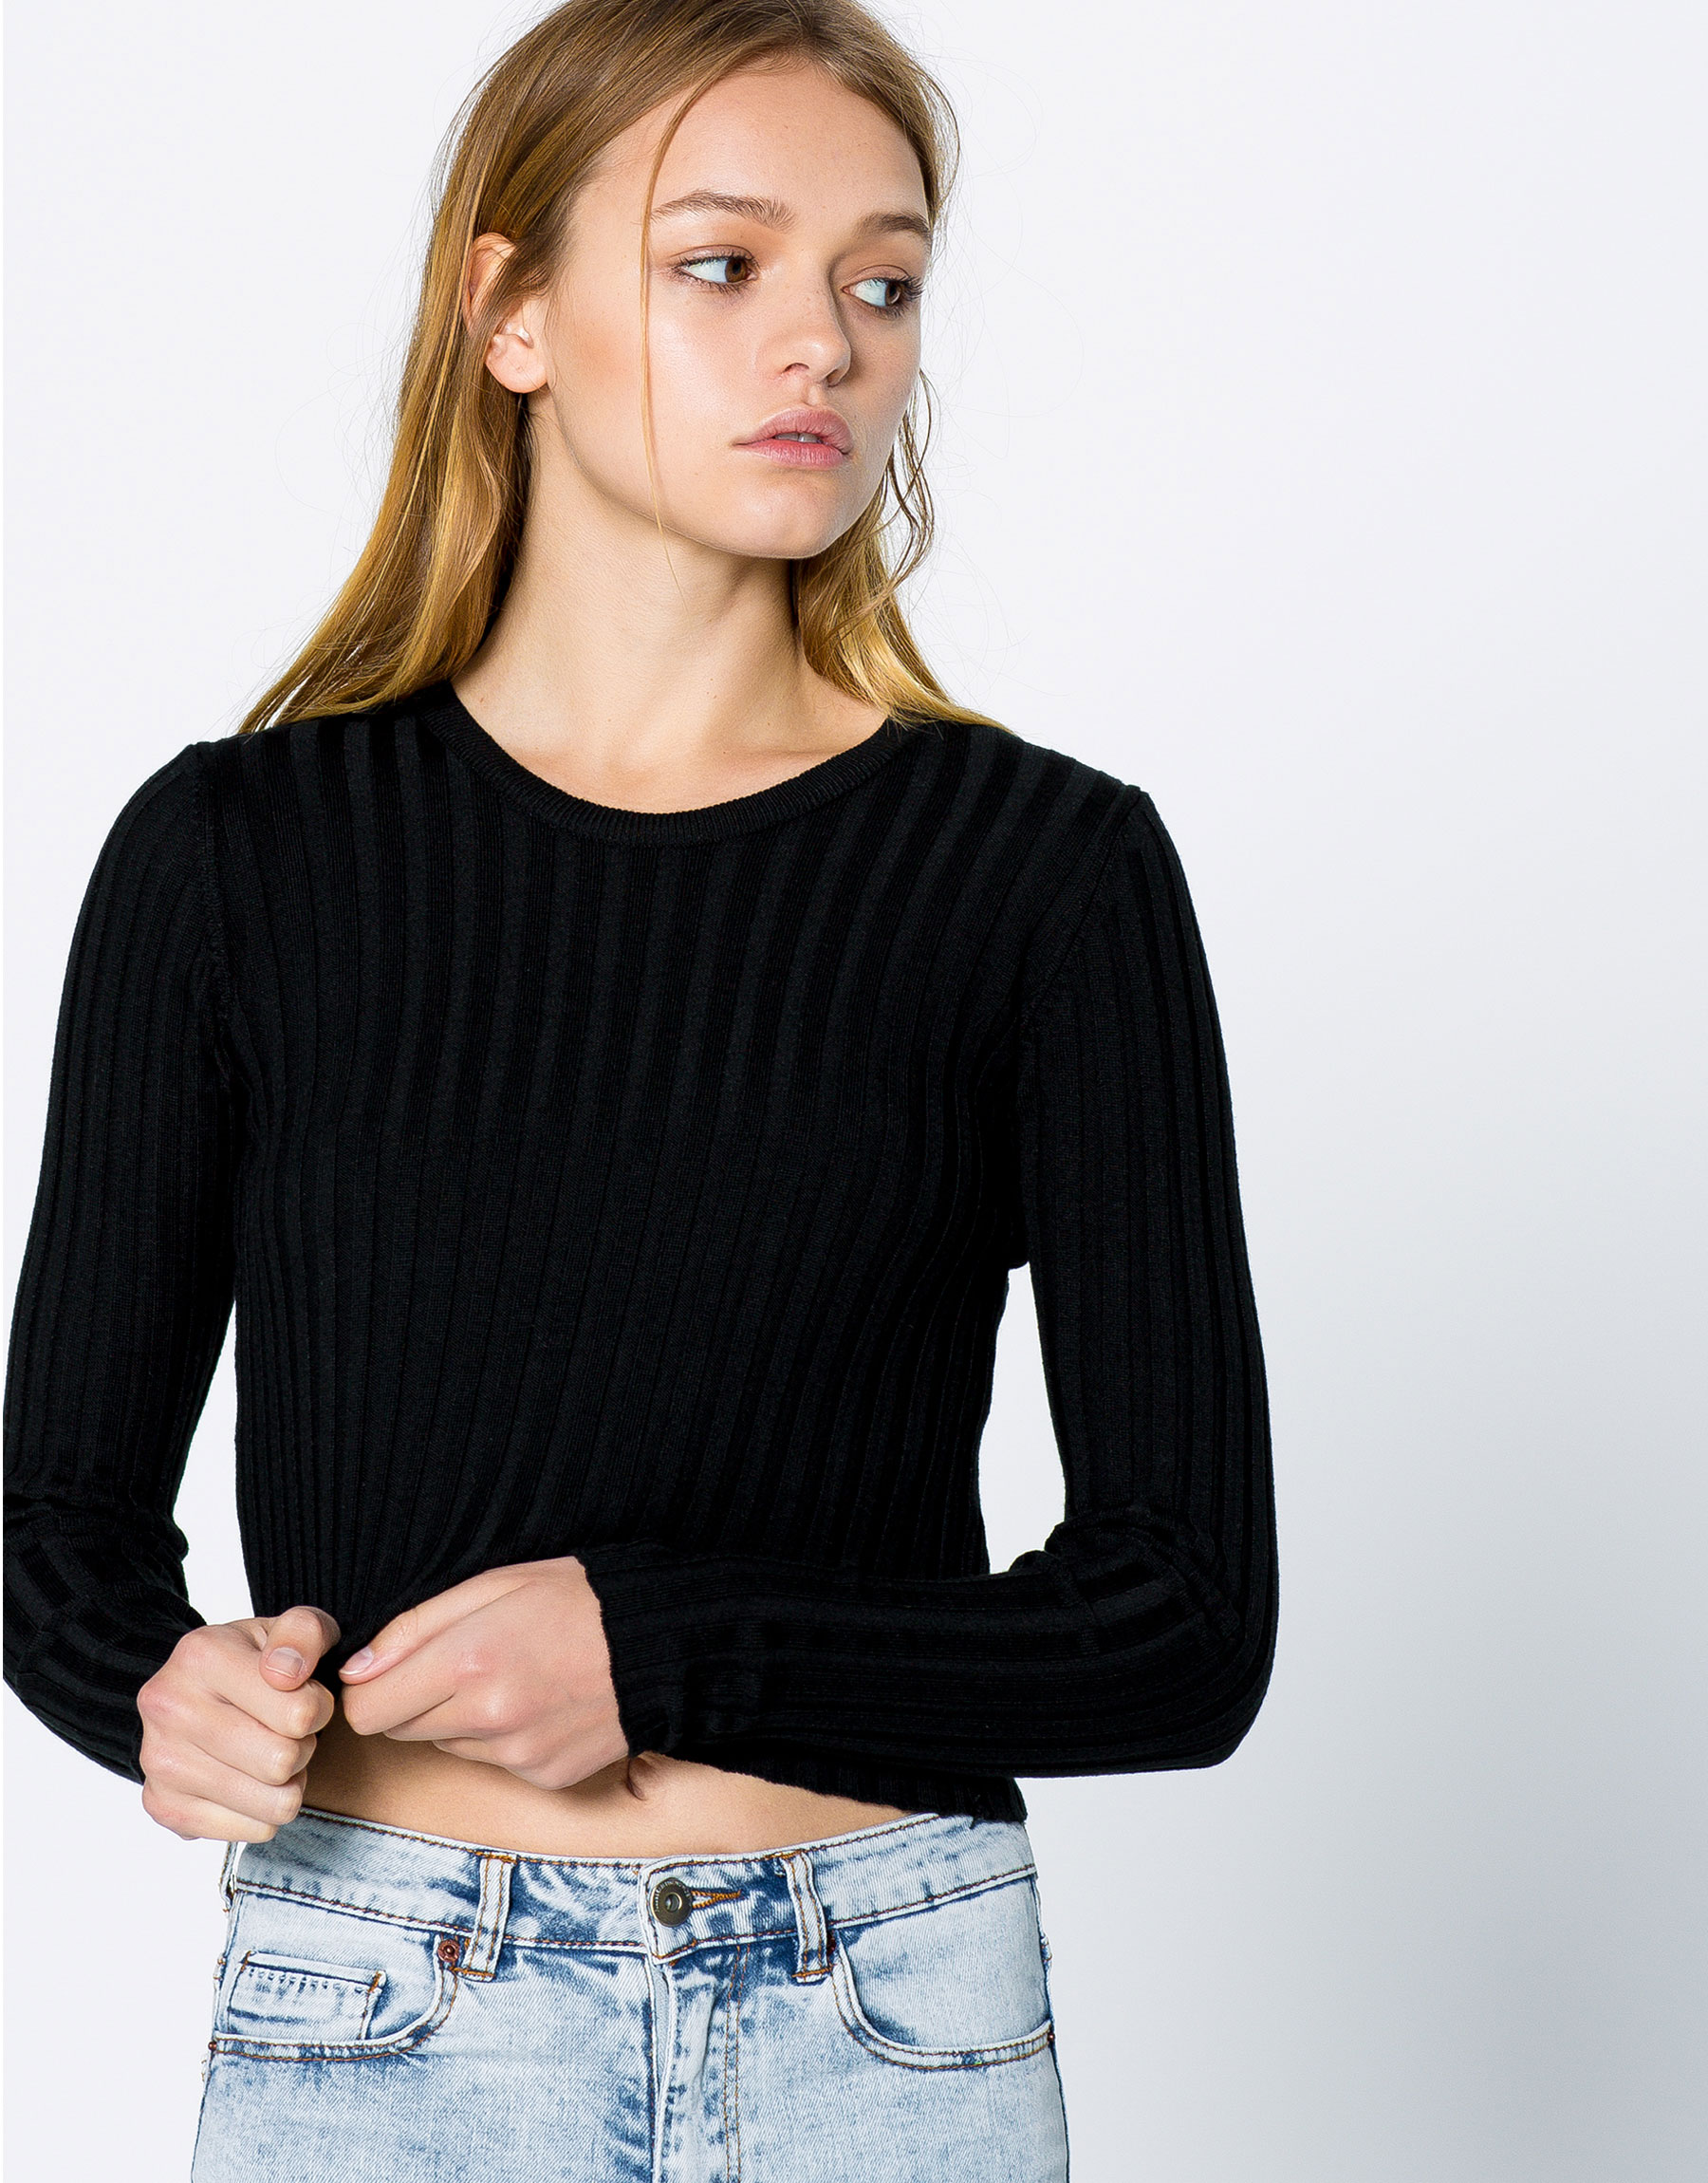 Round neck pearl knit sweater